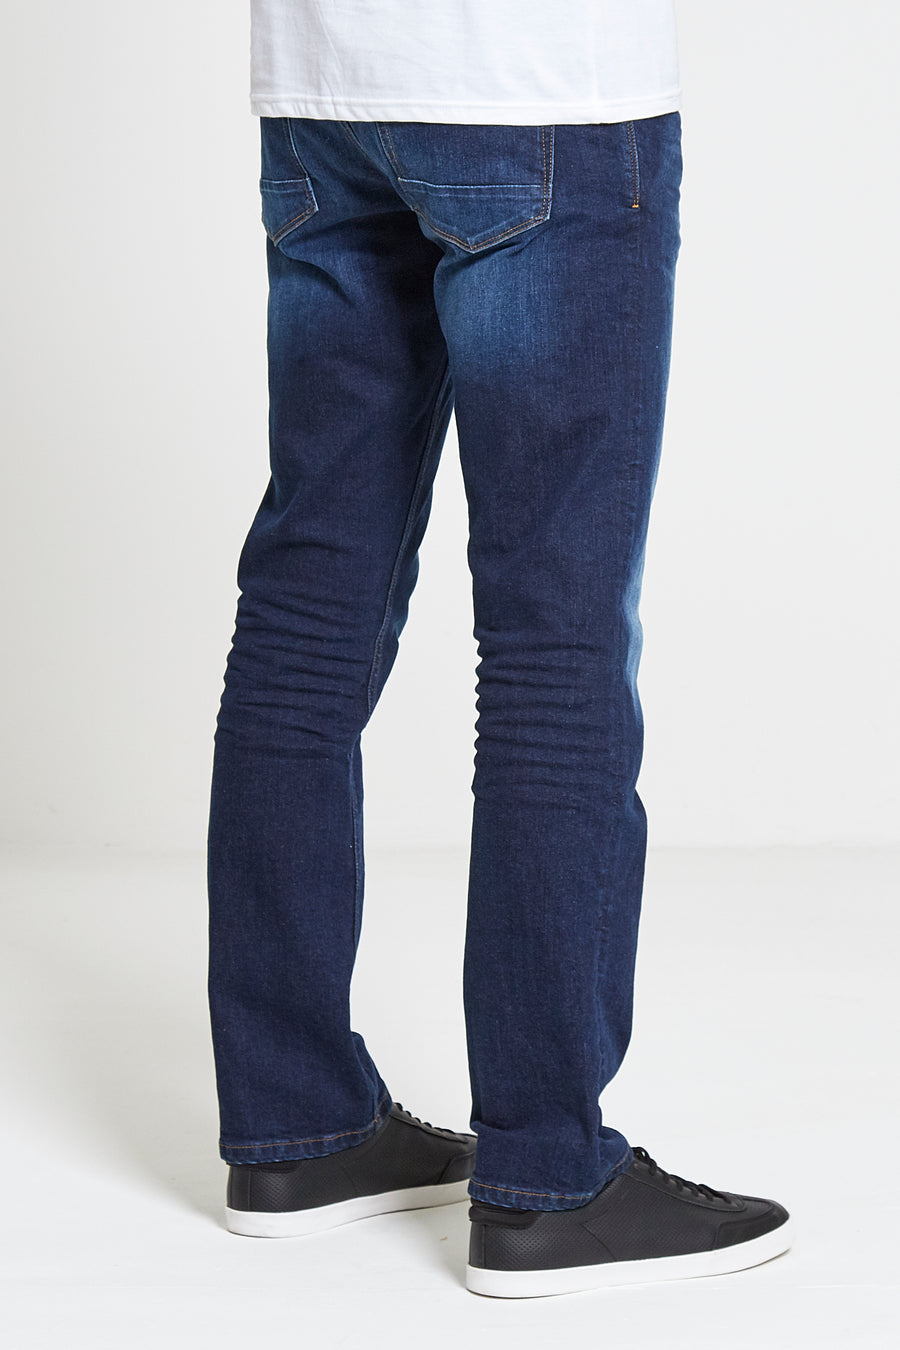 Hunter Straight Fit Stretch Jeans in Dark Wash - DML Jeans